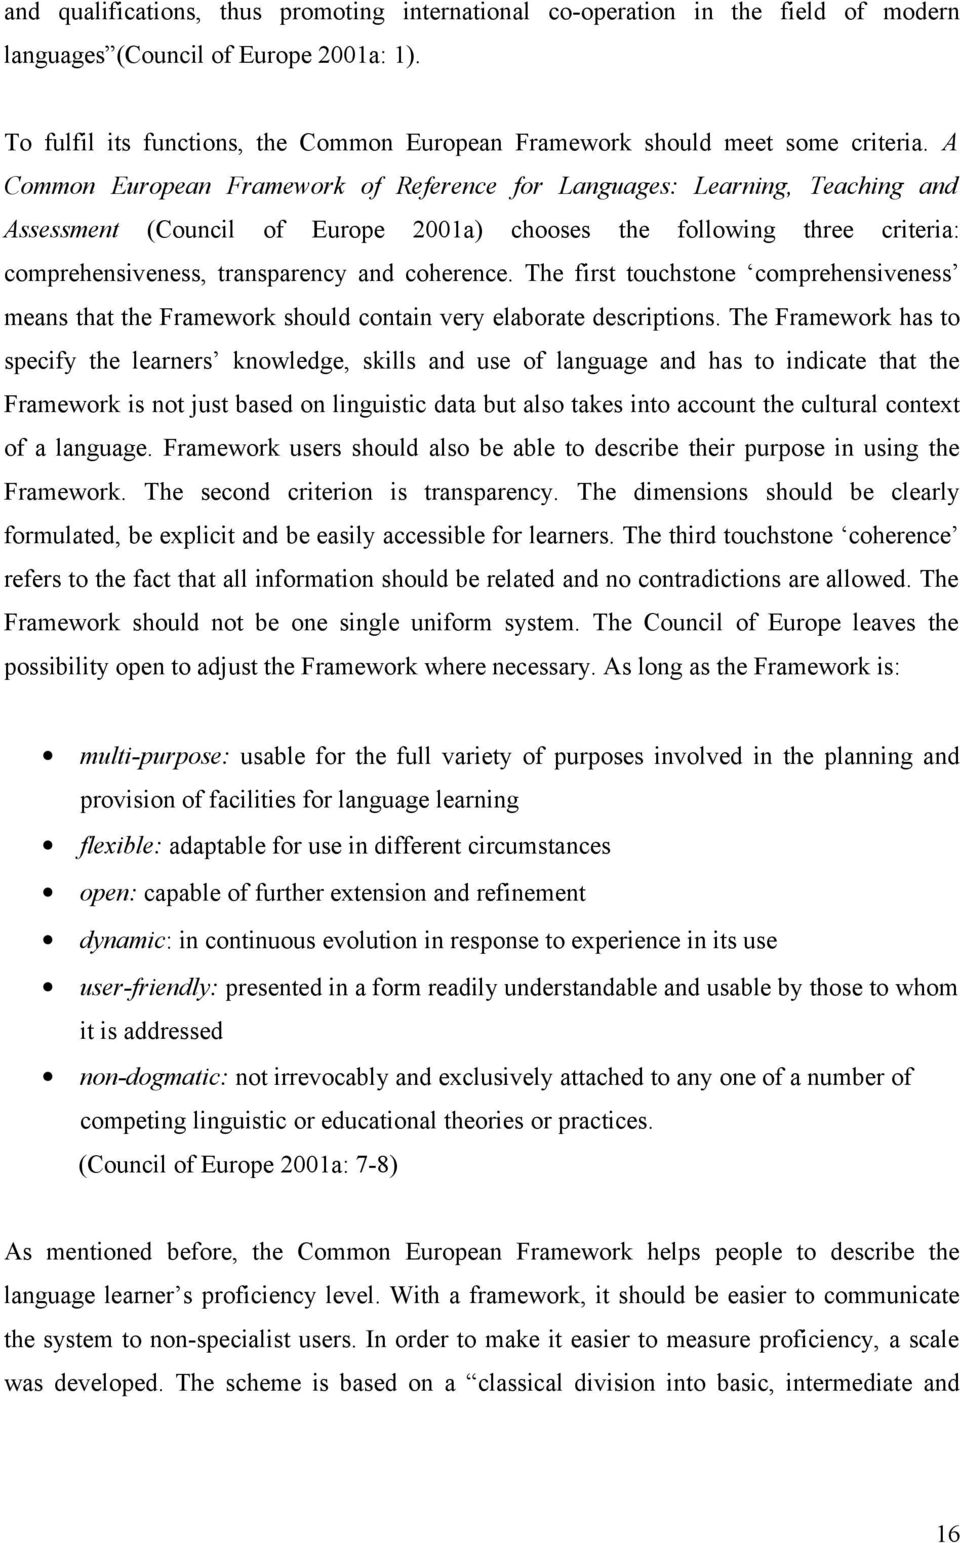 A Common European Framework of Reference for Languages: Learning, Teaching and Assessment (Council of Europe 2001a) chooses the following three criteria: comprehensiveness, transparency and coherence.